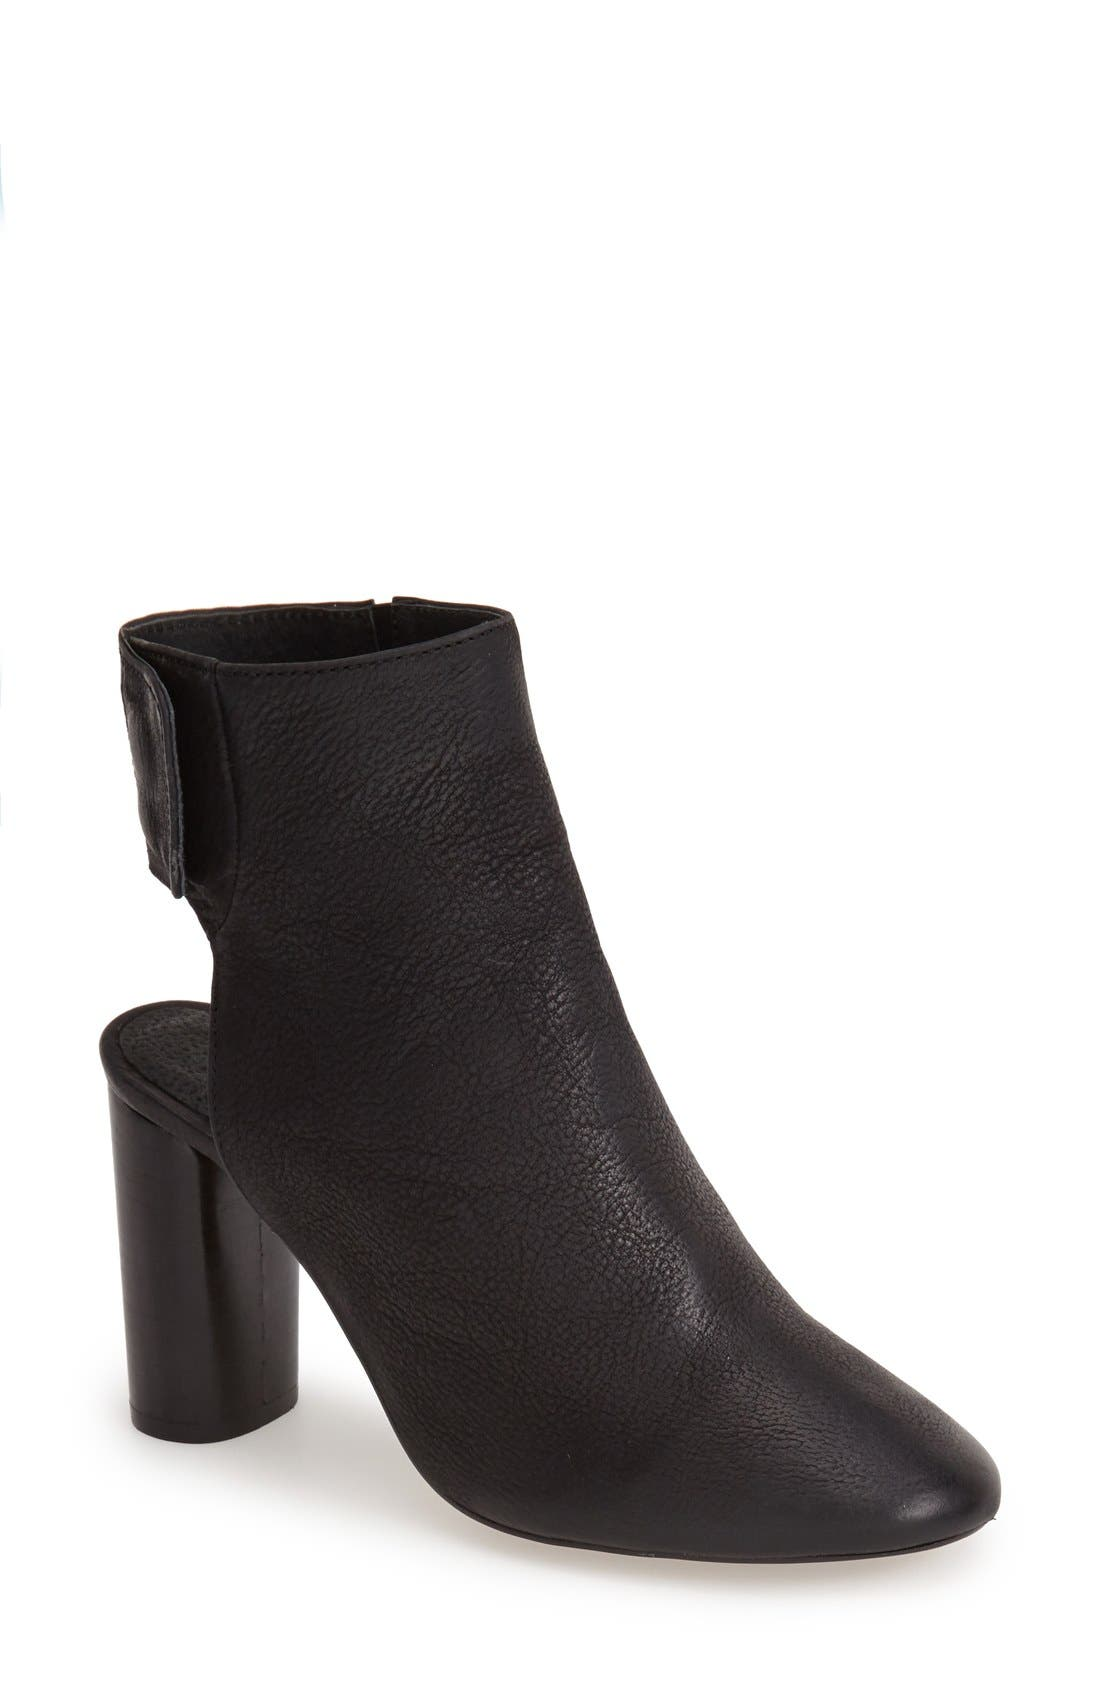 Alternate Image 1 Selected - Topshop 'Maid' Leather Ankle Boot (Women)